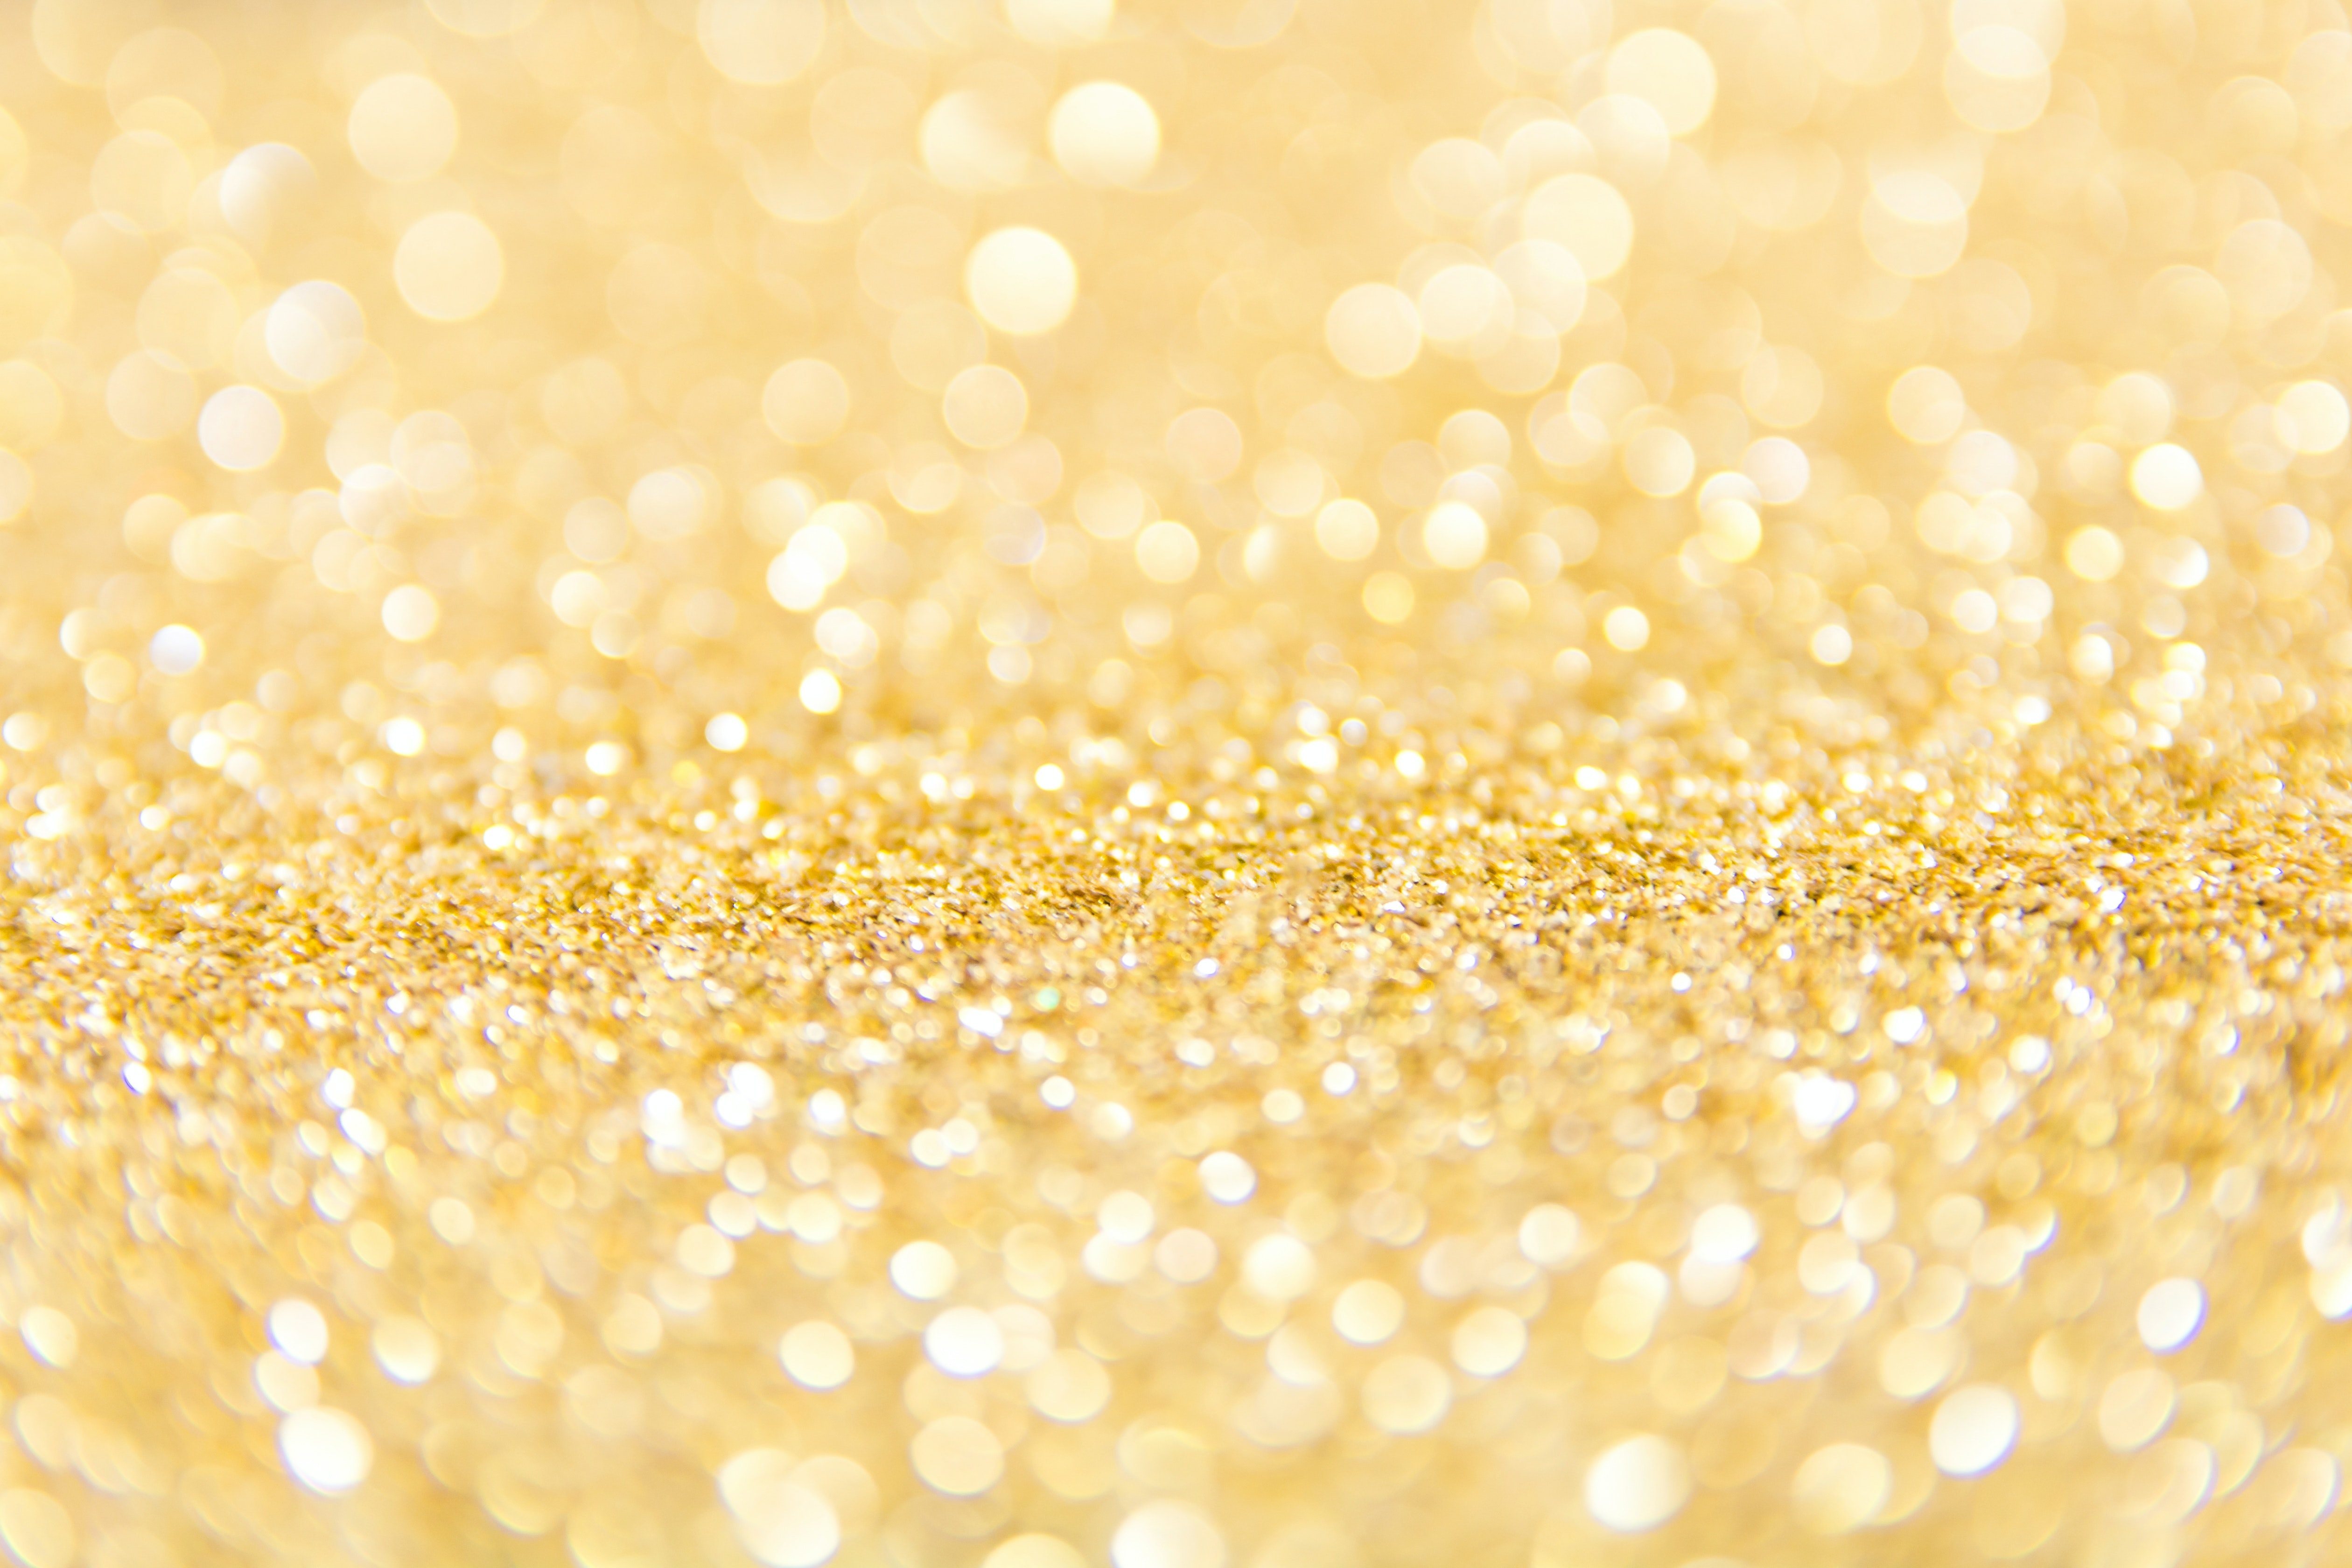 Marvelous Gold Glitter Background Photos